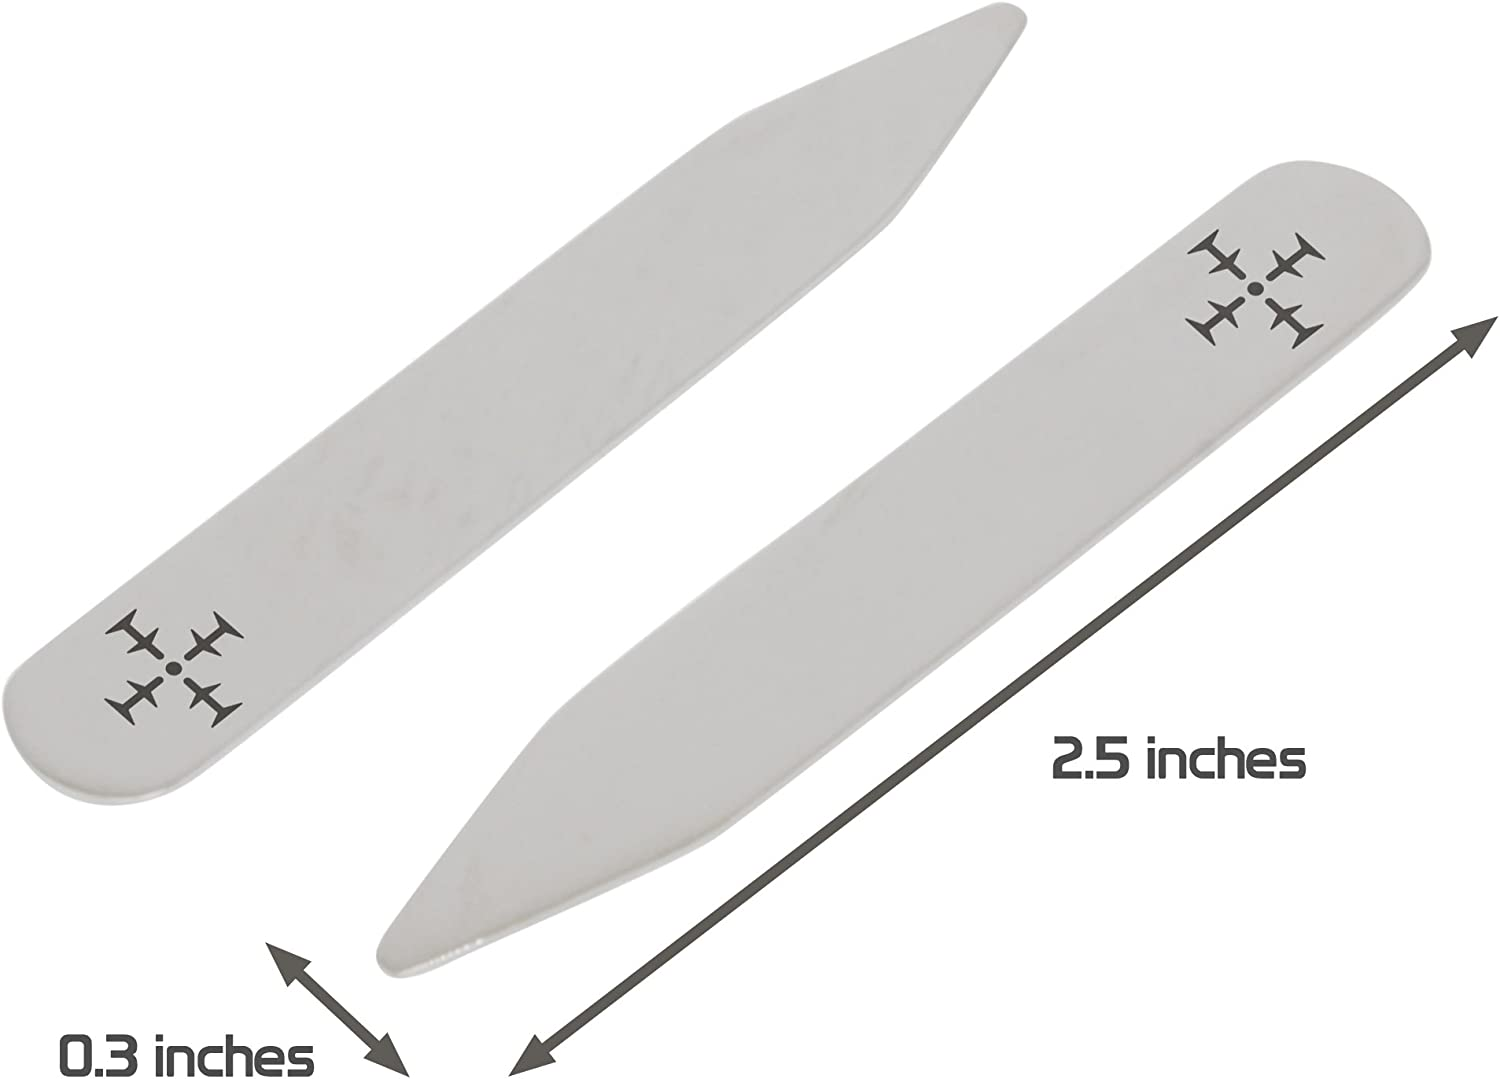 Made In USA MODERN GOODS SHOP Stainless Steel Collar Stays With Laser Engraved Quilt Design 2.5 Inch Metal Collar Stiffeners